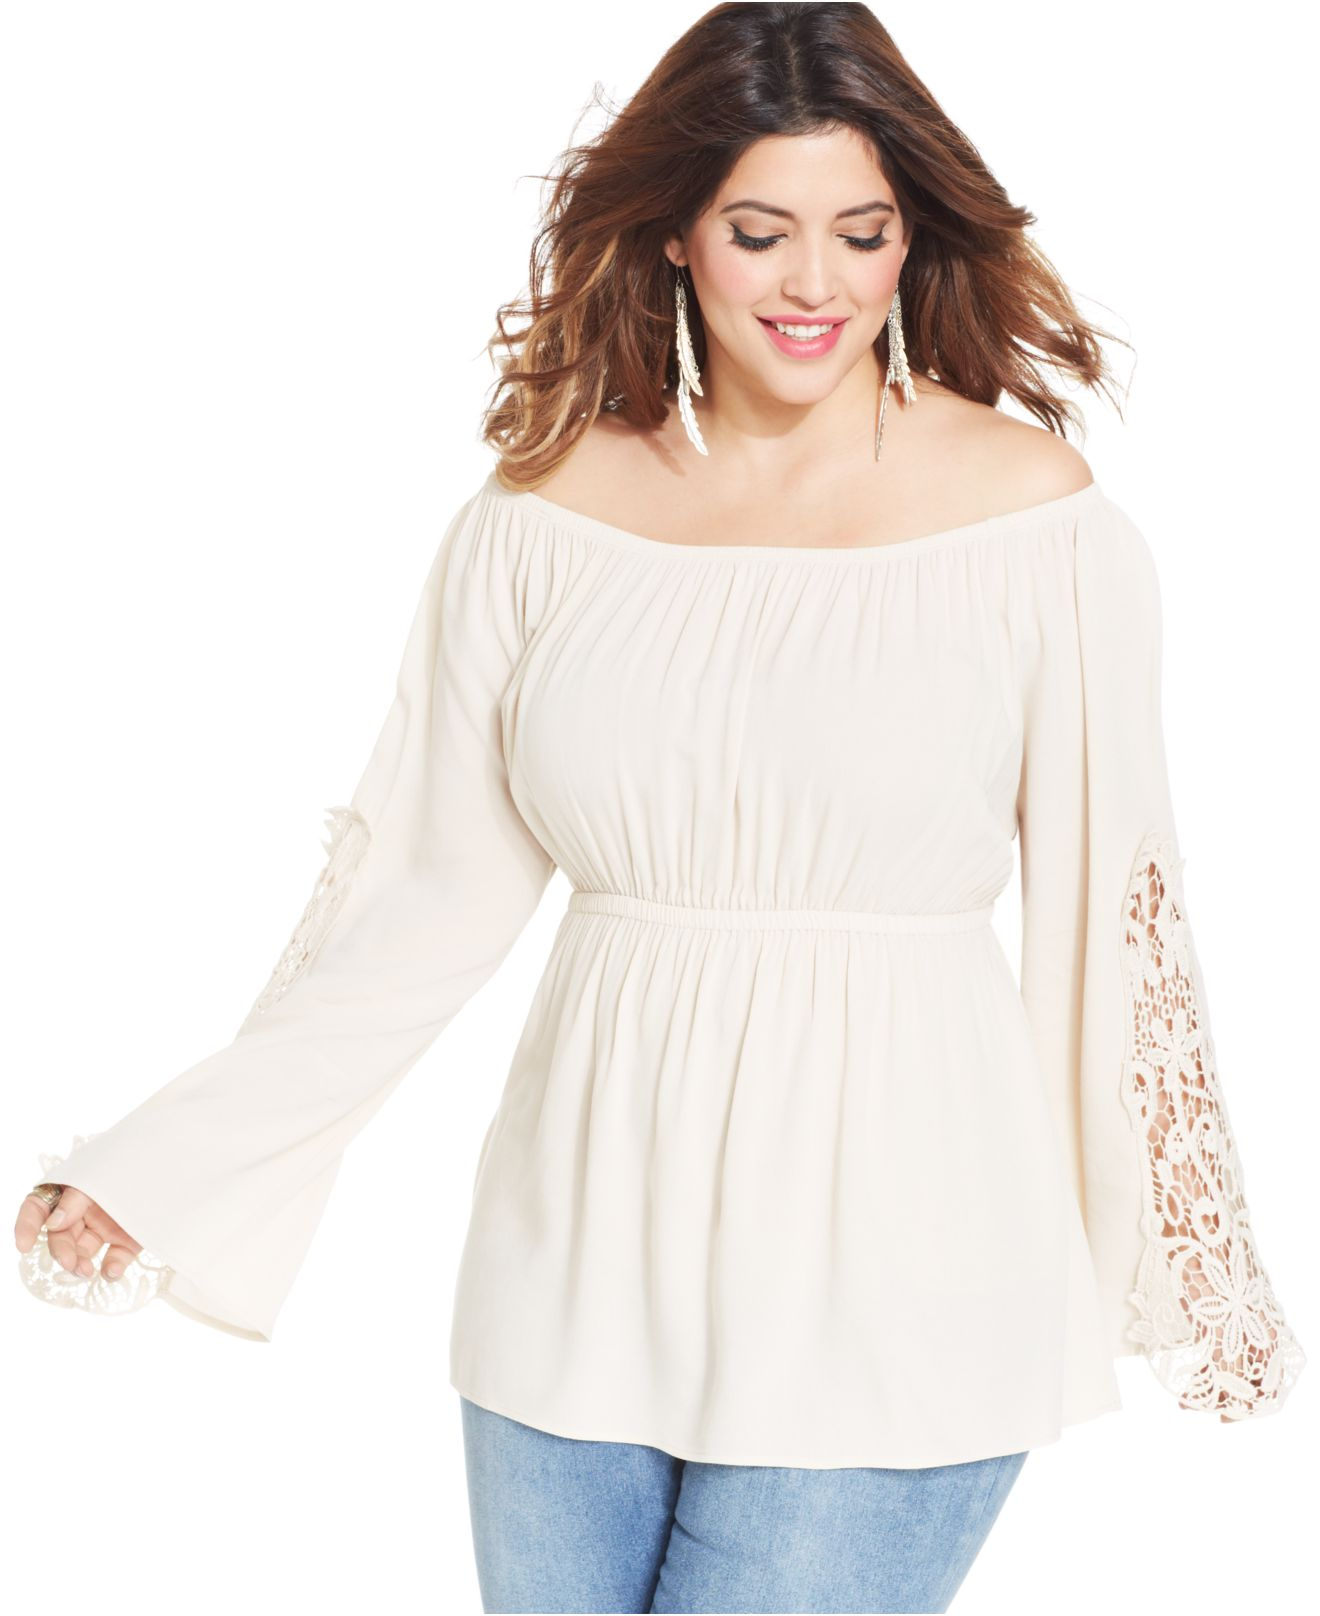 soprano plus size off-shoulder crochet peasant top in white | lyst